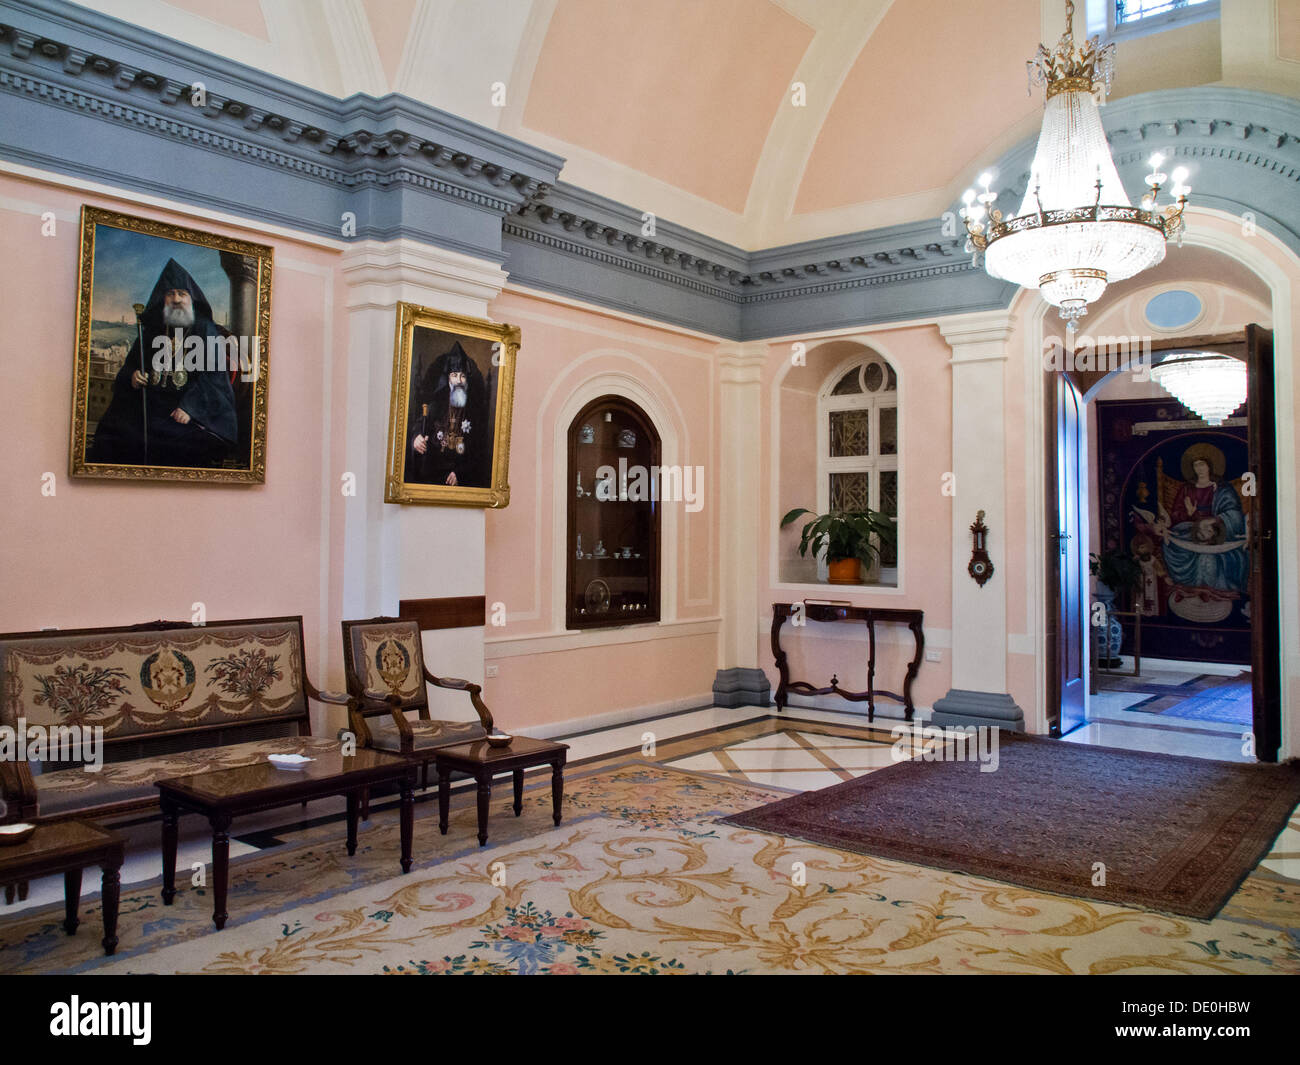 The main hall at the residence of the Armenian Patriarch at the Cathedral of St. James in Jerusalem. Although legislation describes Israel as a 'Jewish' state it also provides for freedom of worship which is respected in practice. - Stock Image